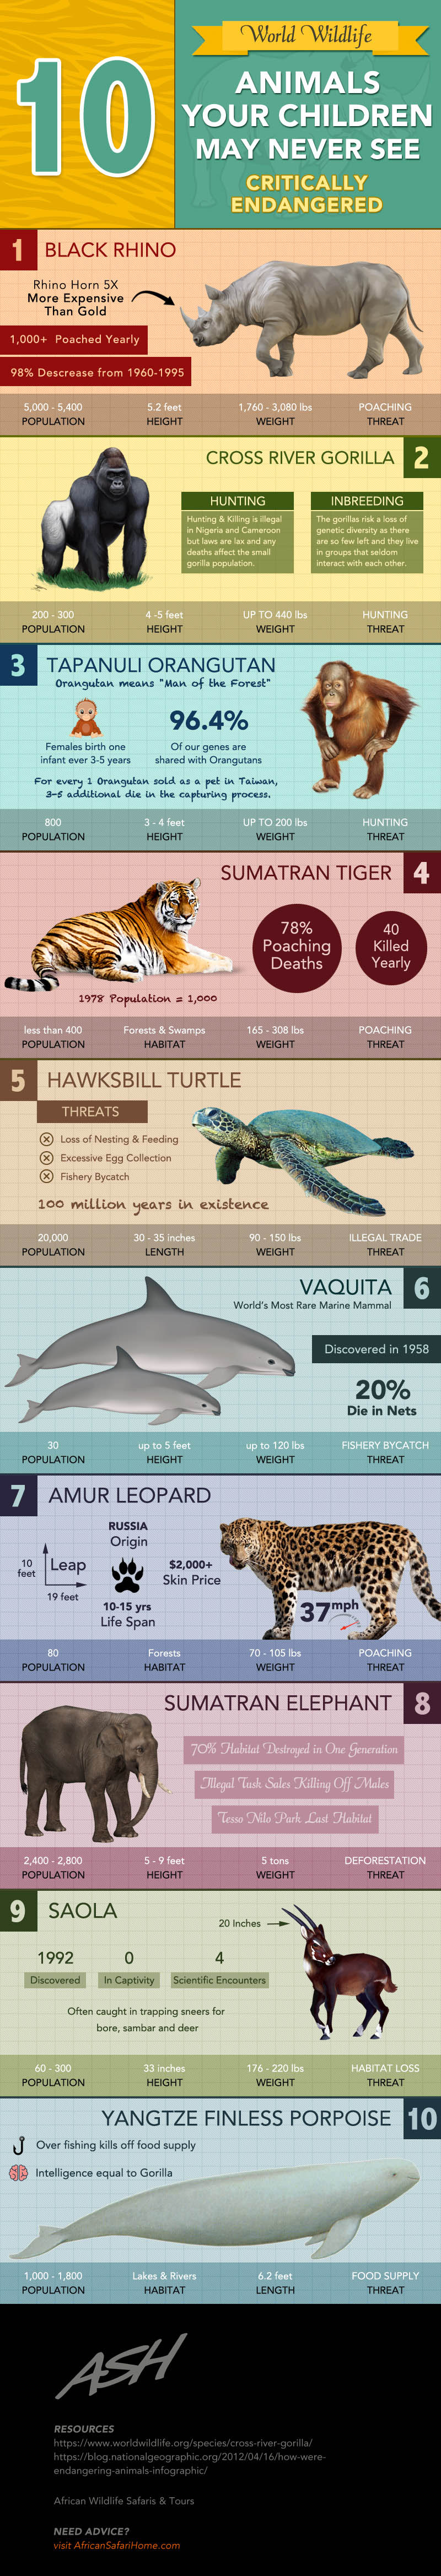 Extinction Alert: 10 Well-Known Animals That Future Generations Won't See - Infographic